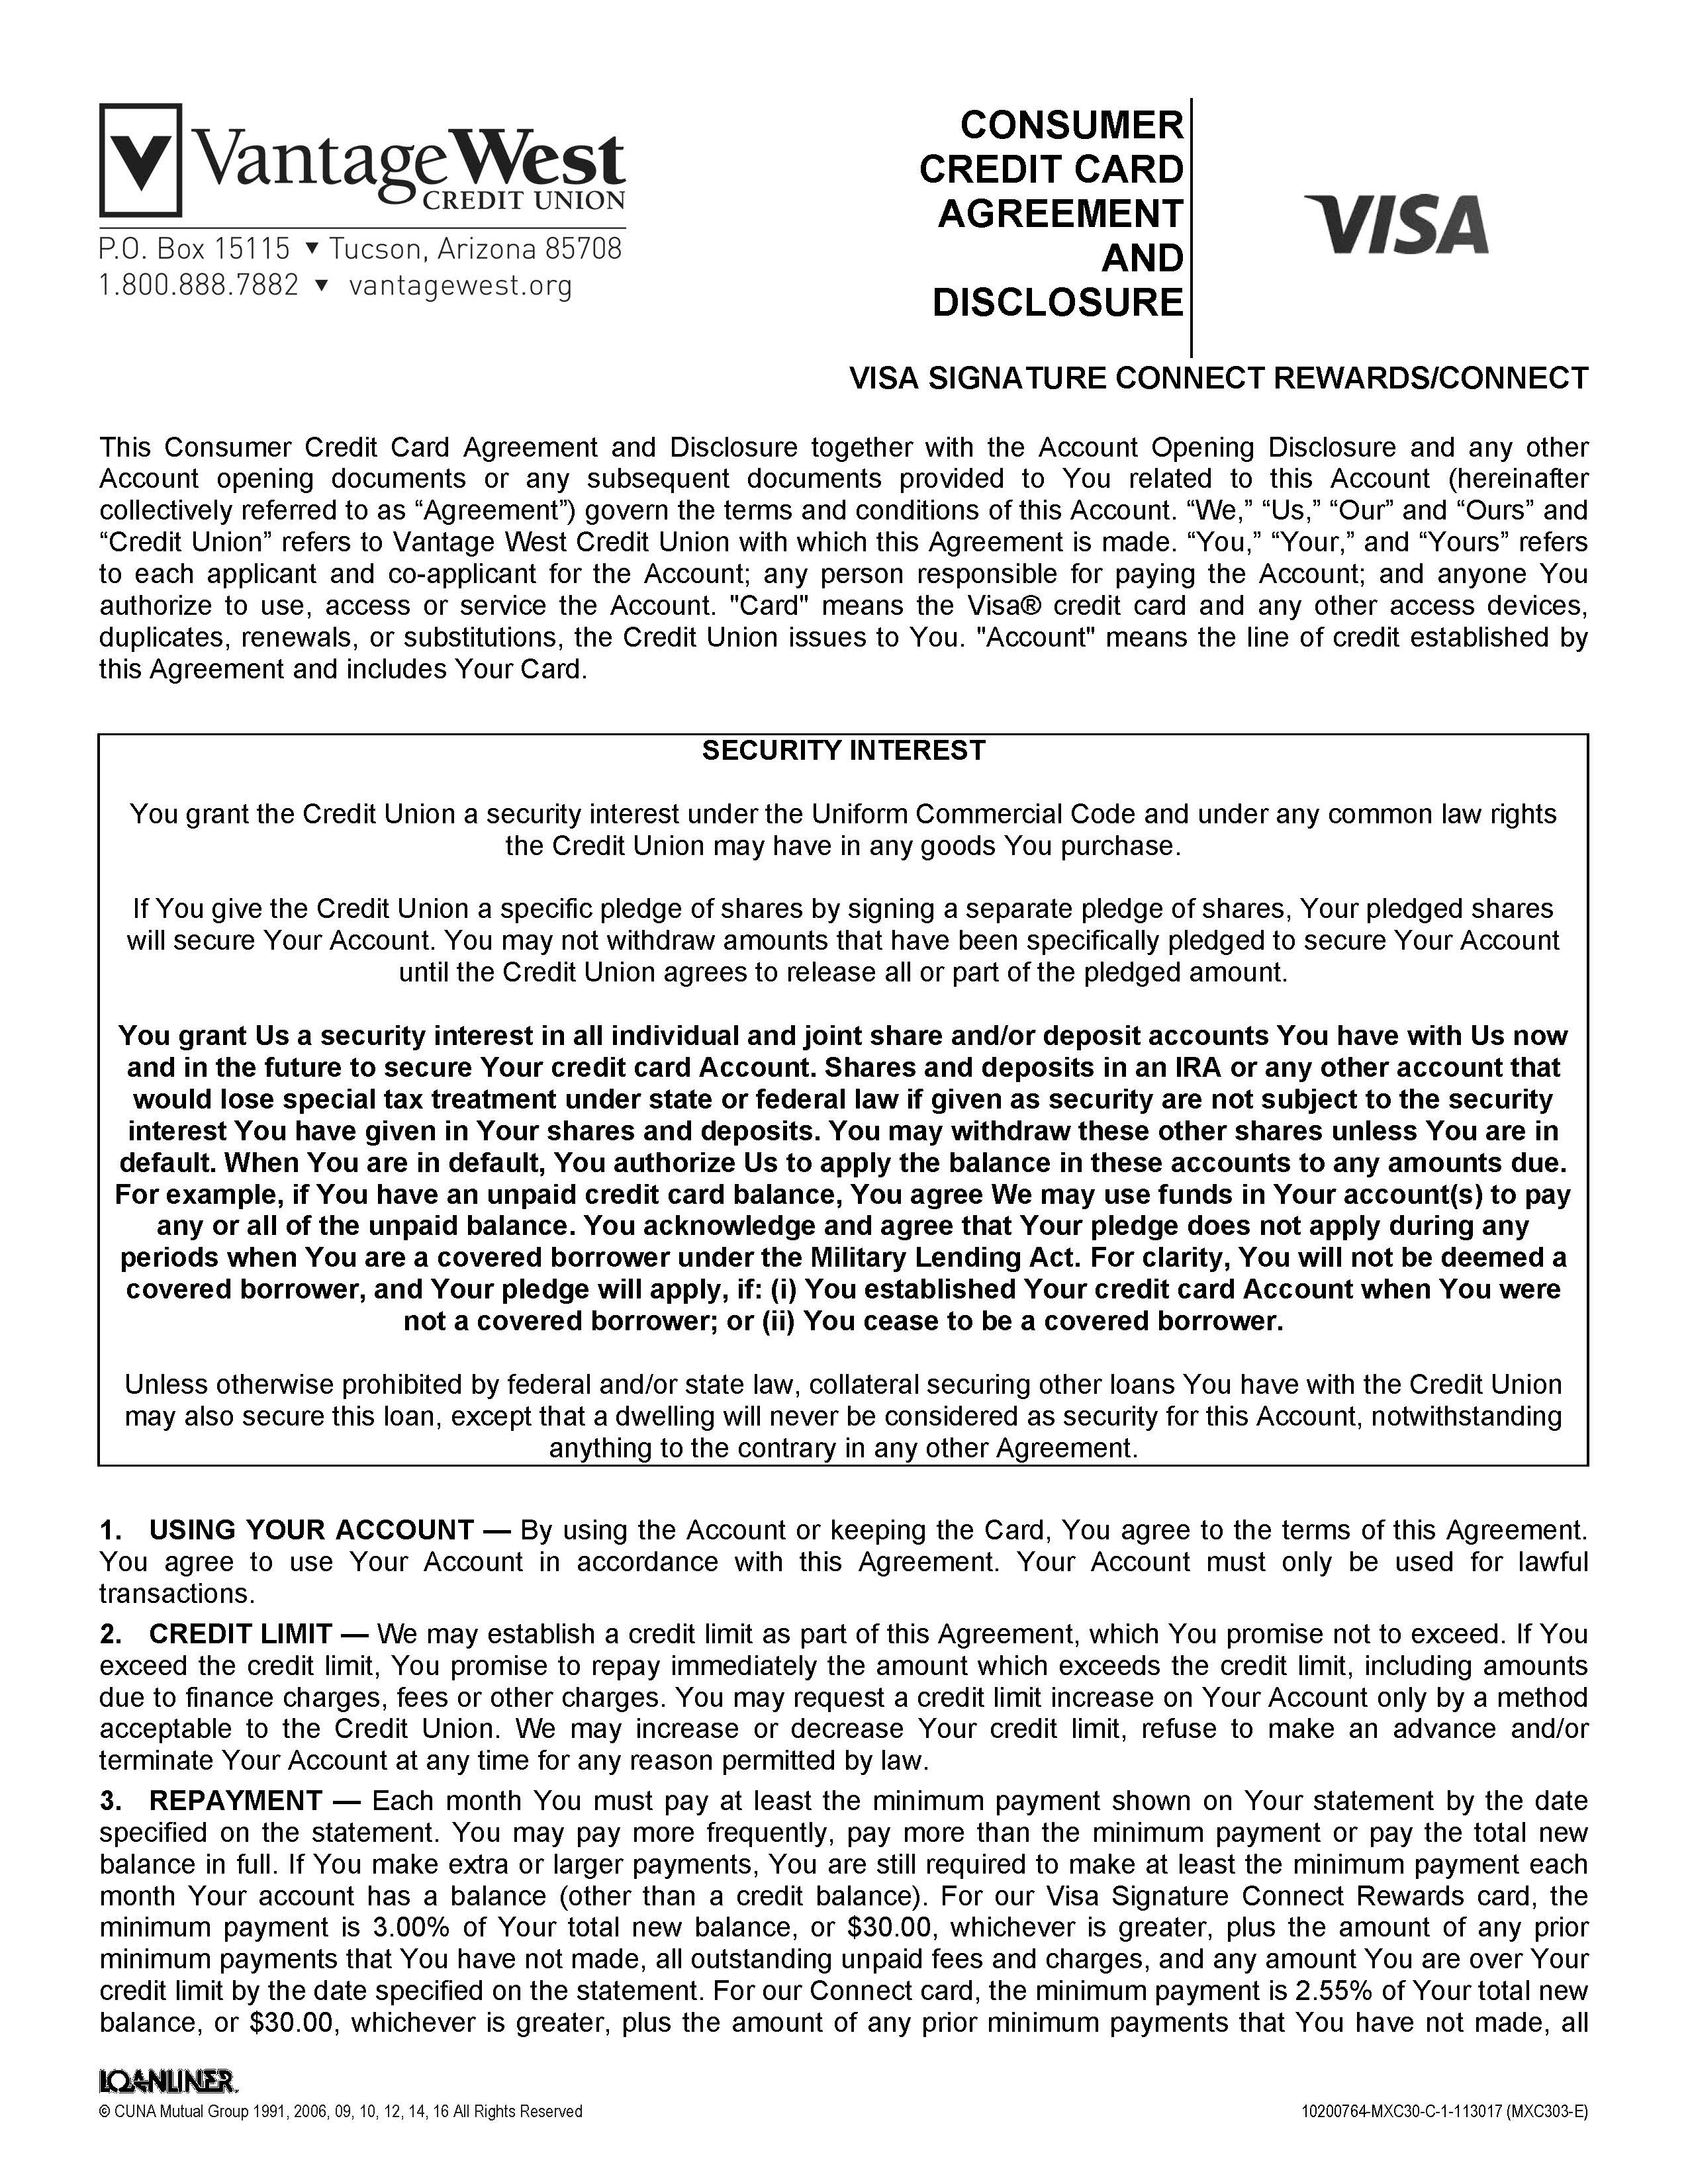 Consumer Credit Card Agreement And Disclosure Page1 Vantage West